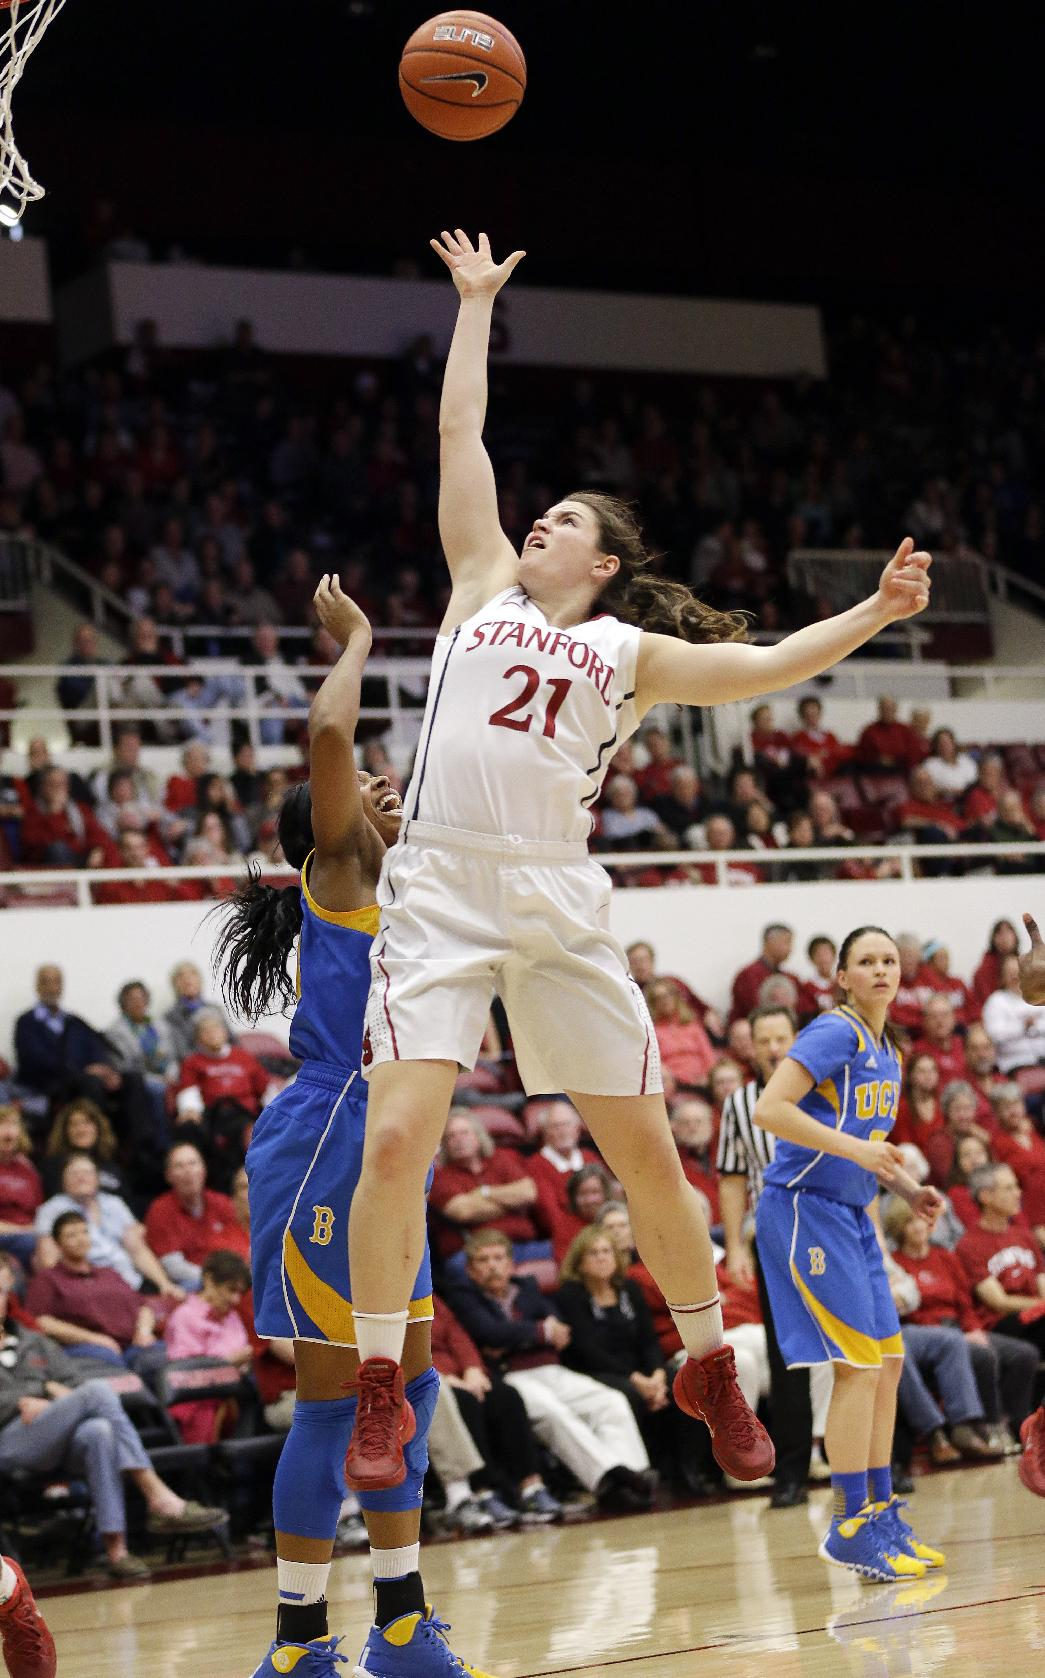 Stanford's Sara James (21) scores against UCLA during the first half of an NCAA college basketball game Friday, Jan. 24, 2014, in Stanford, Calif